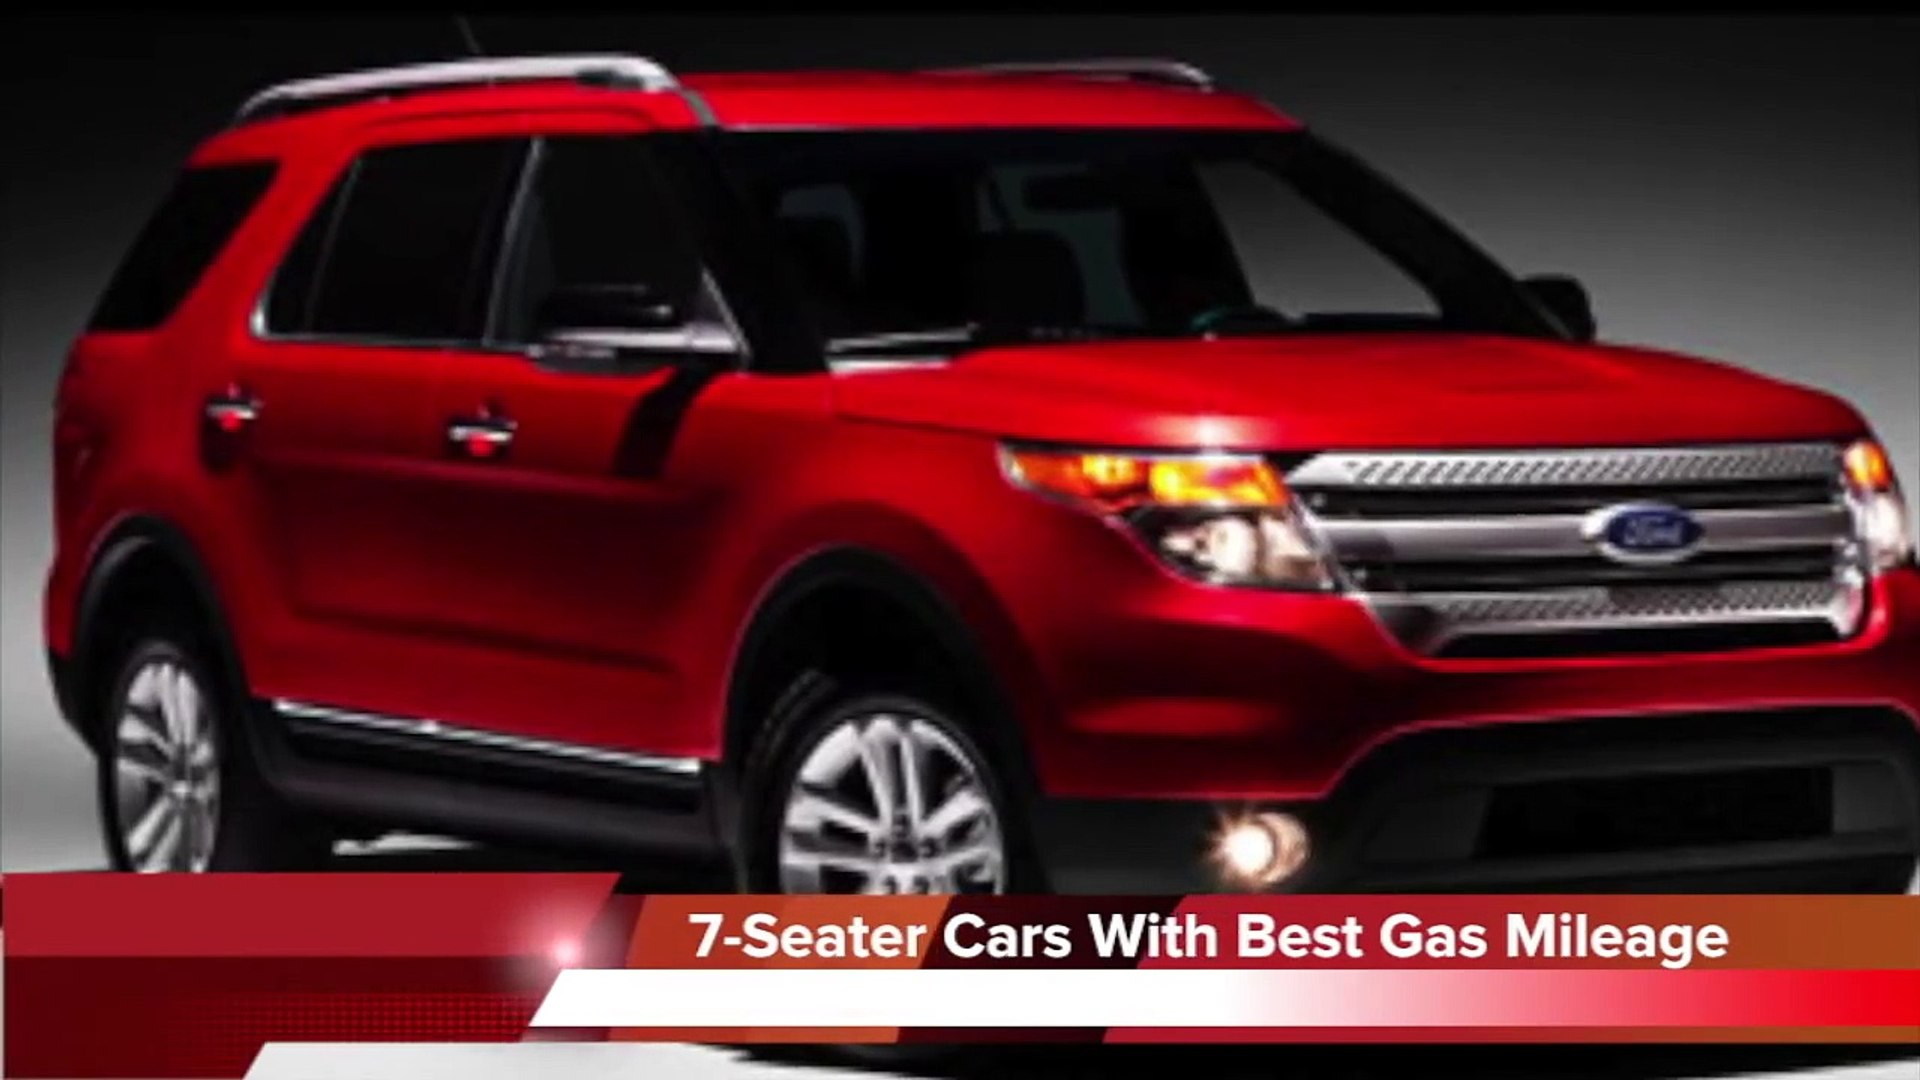 2013 7 Seater Cars With The Best Gas Mileage Video Dailymotion